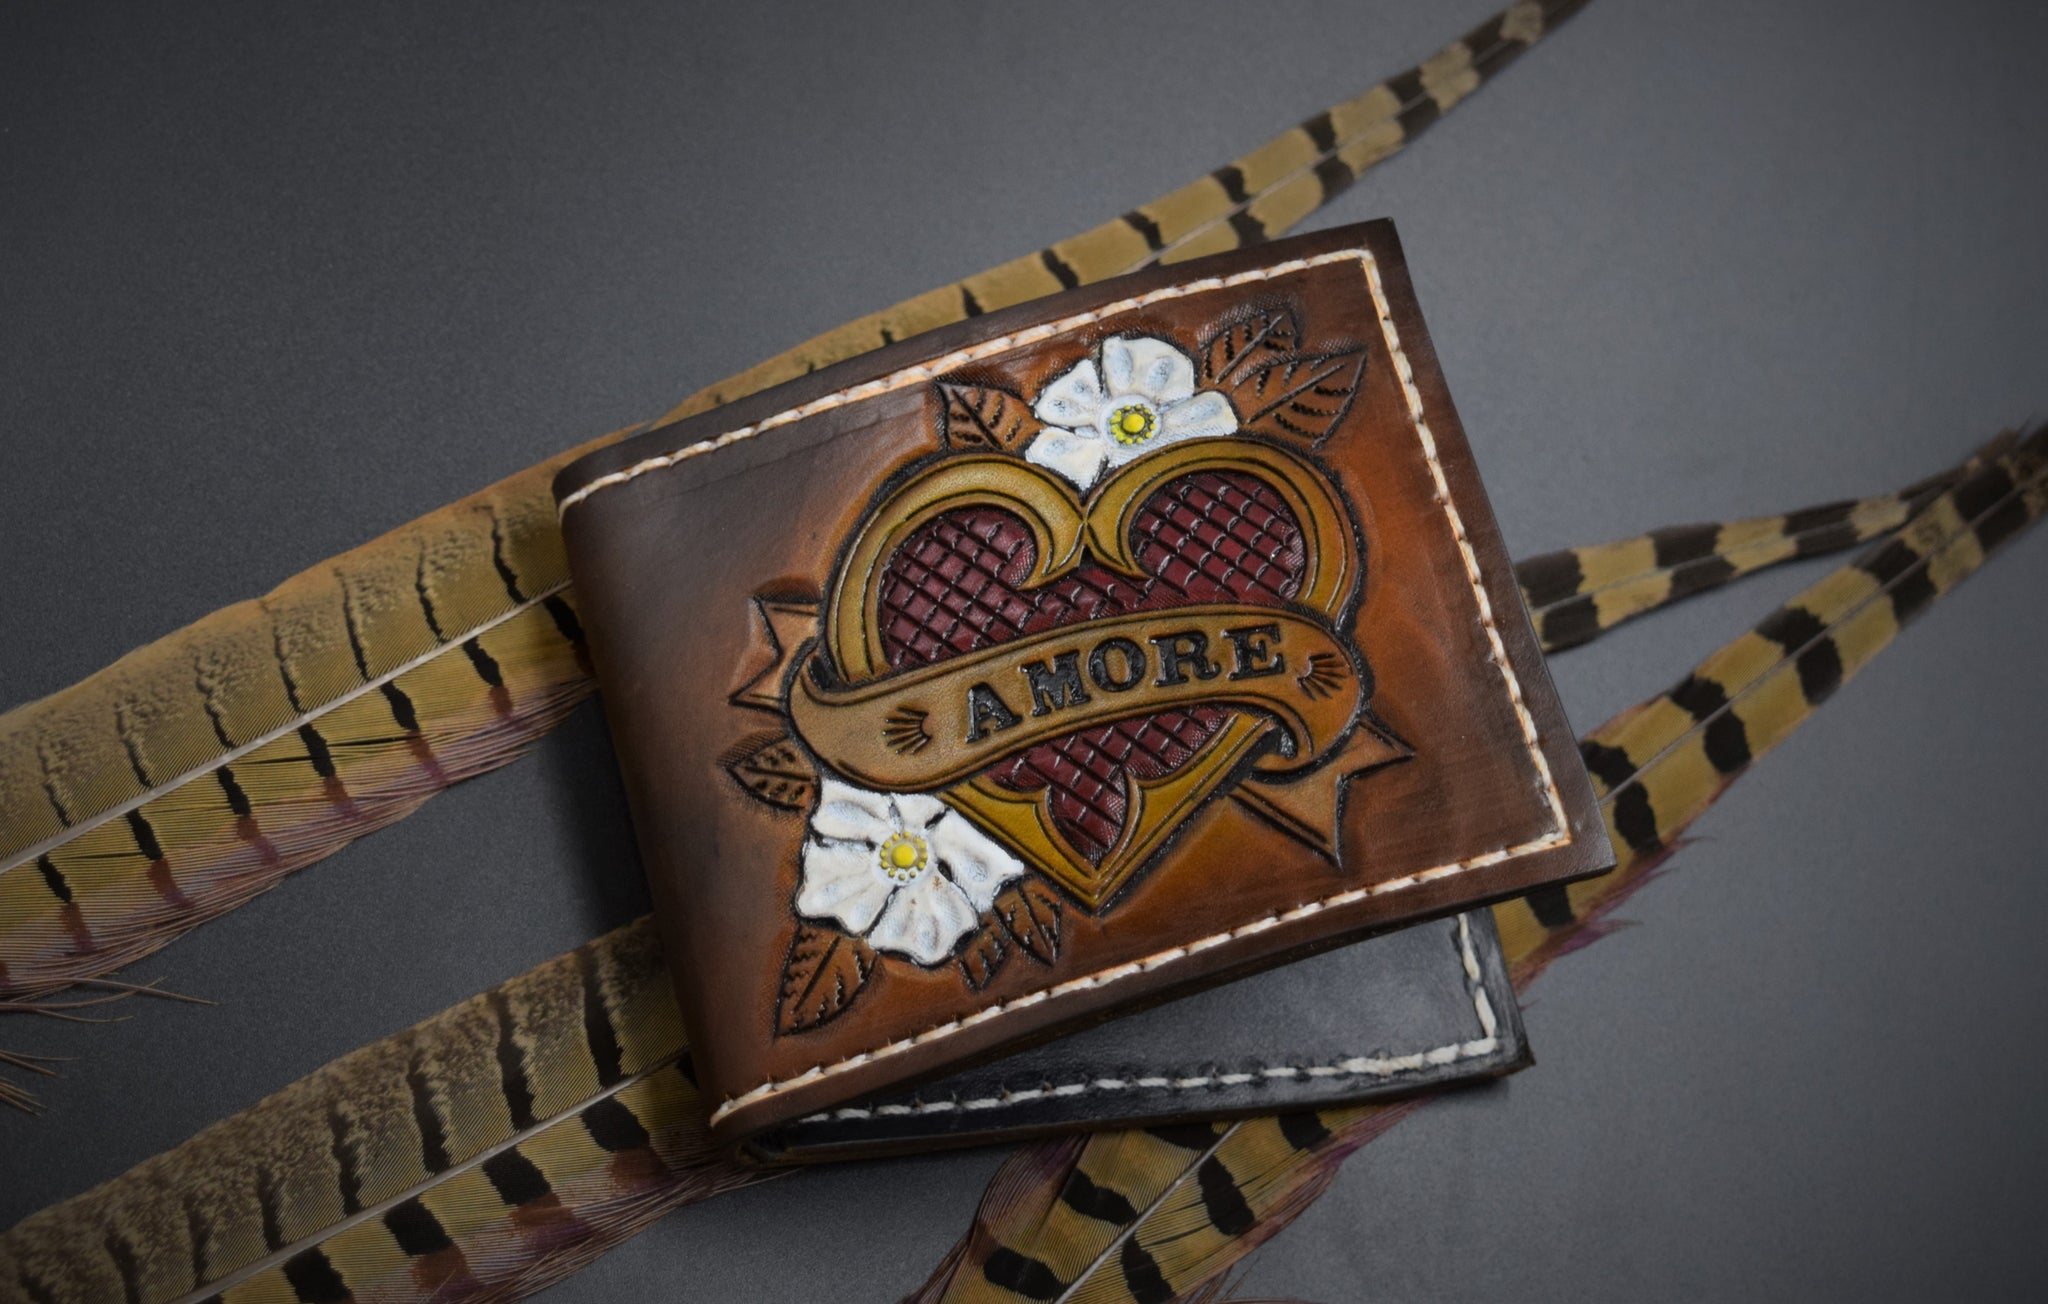 Amore ~love~ traditional tooled leather billfold wallet